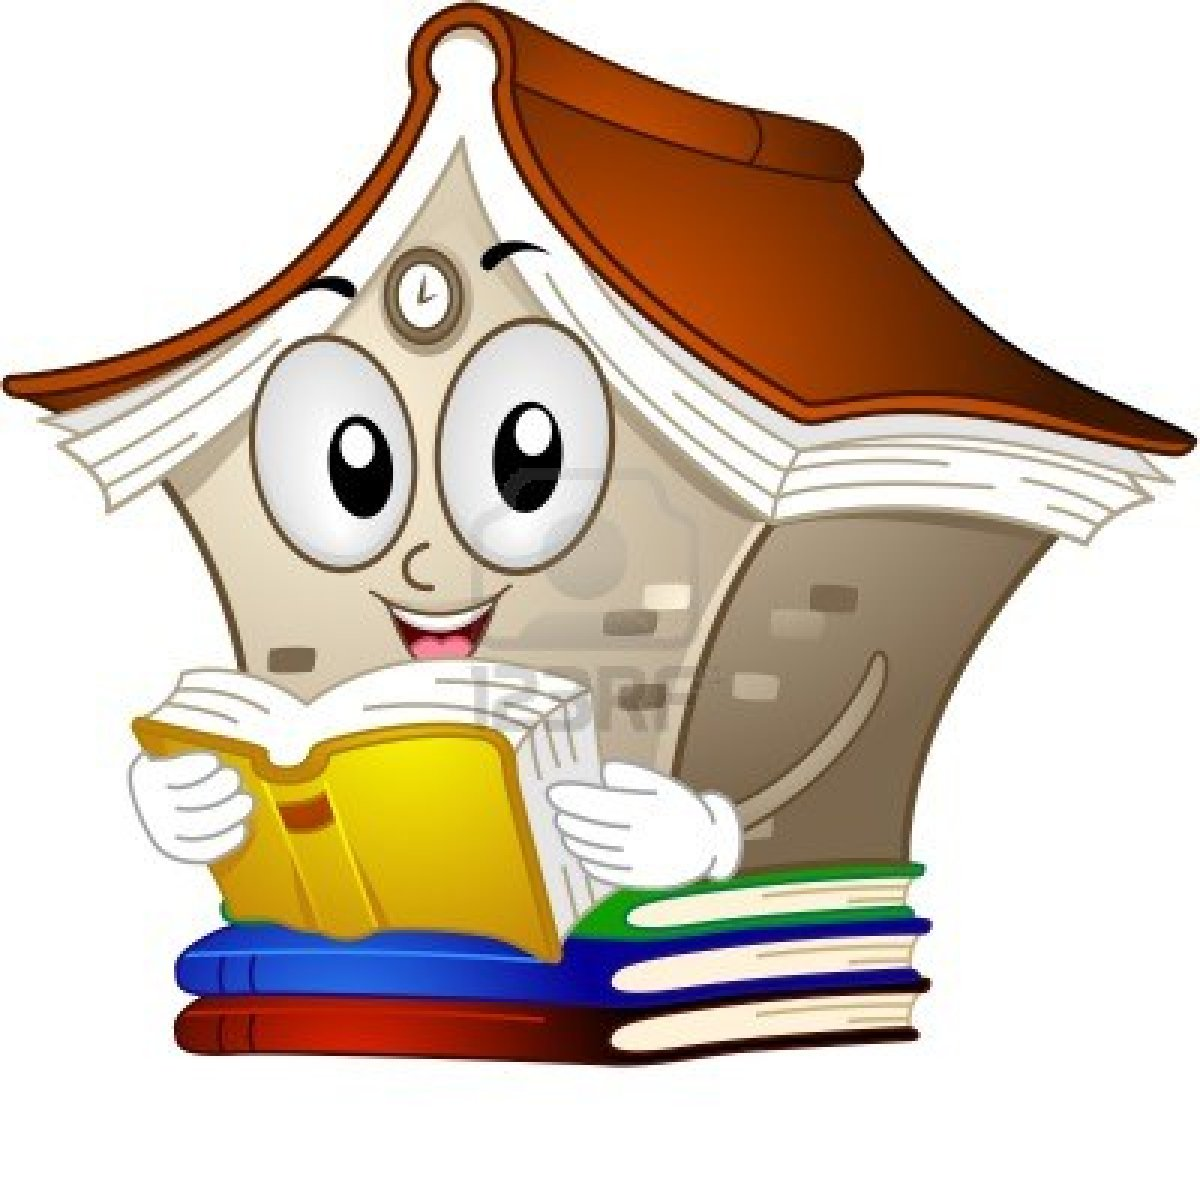 12917521-illustration-of-a-library-mascot-reading-a-book.jpg